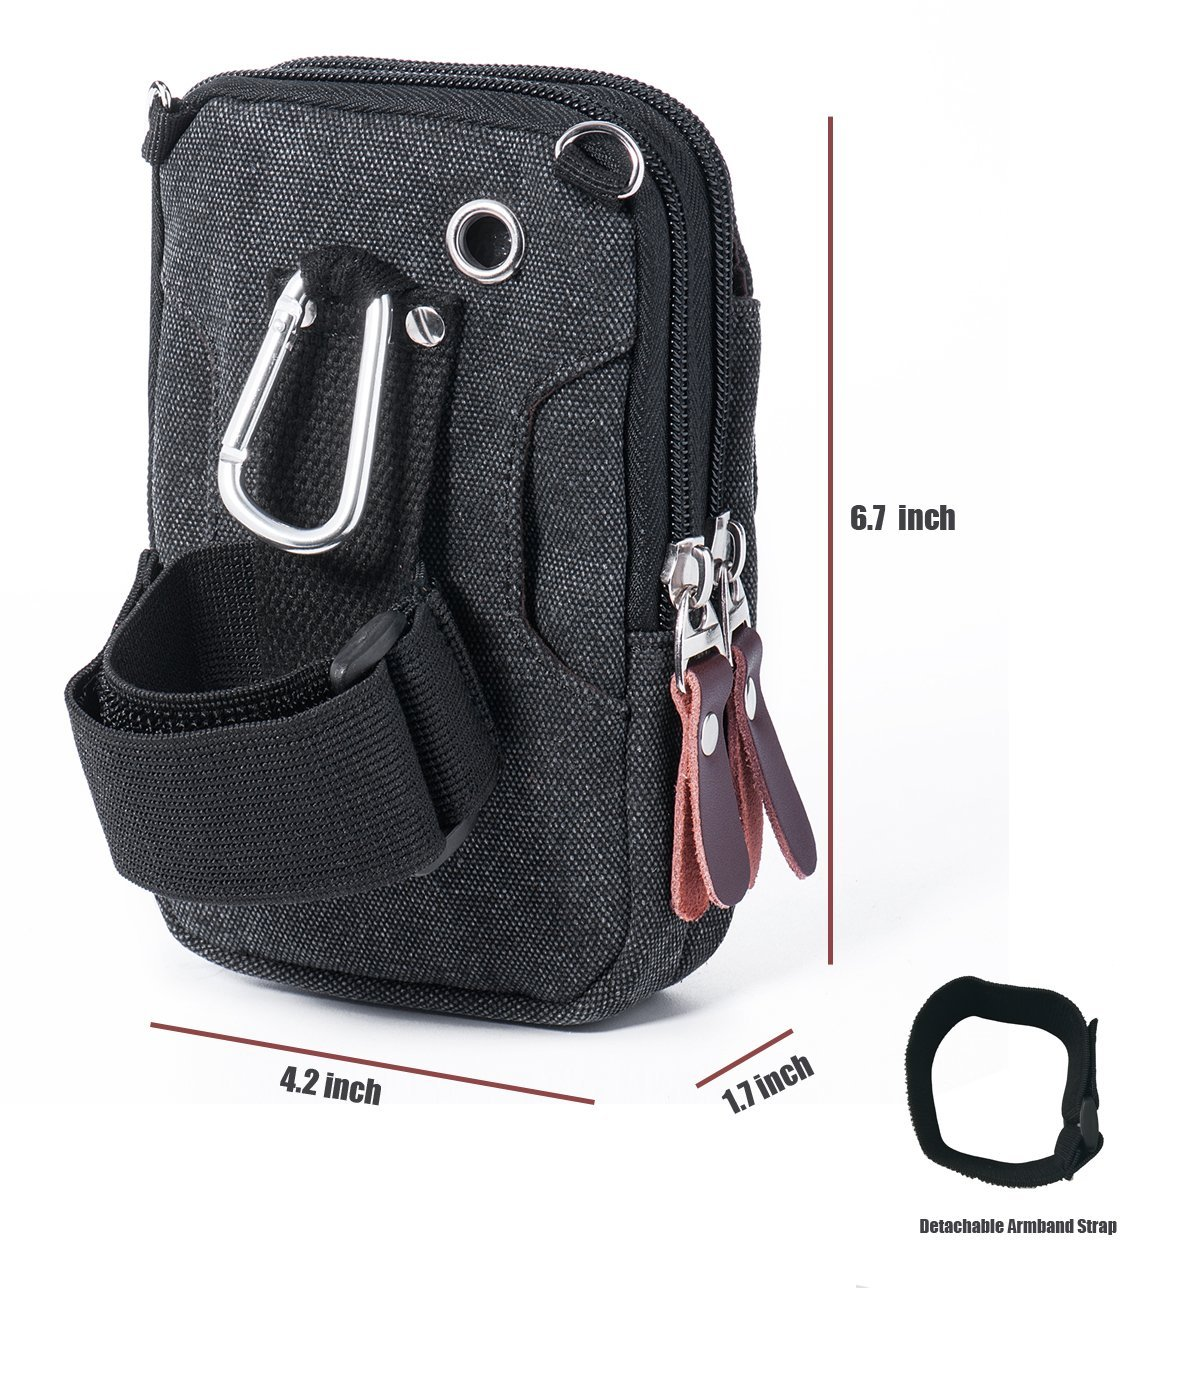 0e29ccaf5e Amazon  Cellphone Bag Holster Belt Waist Pouch Belt Loop Attachment with  Carabiner  5.92 With Coupon Code